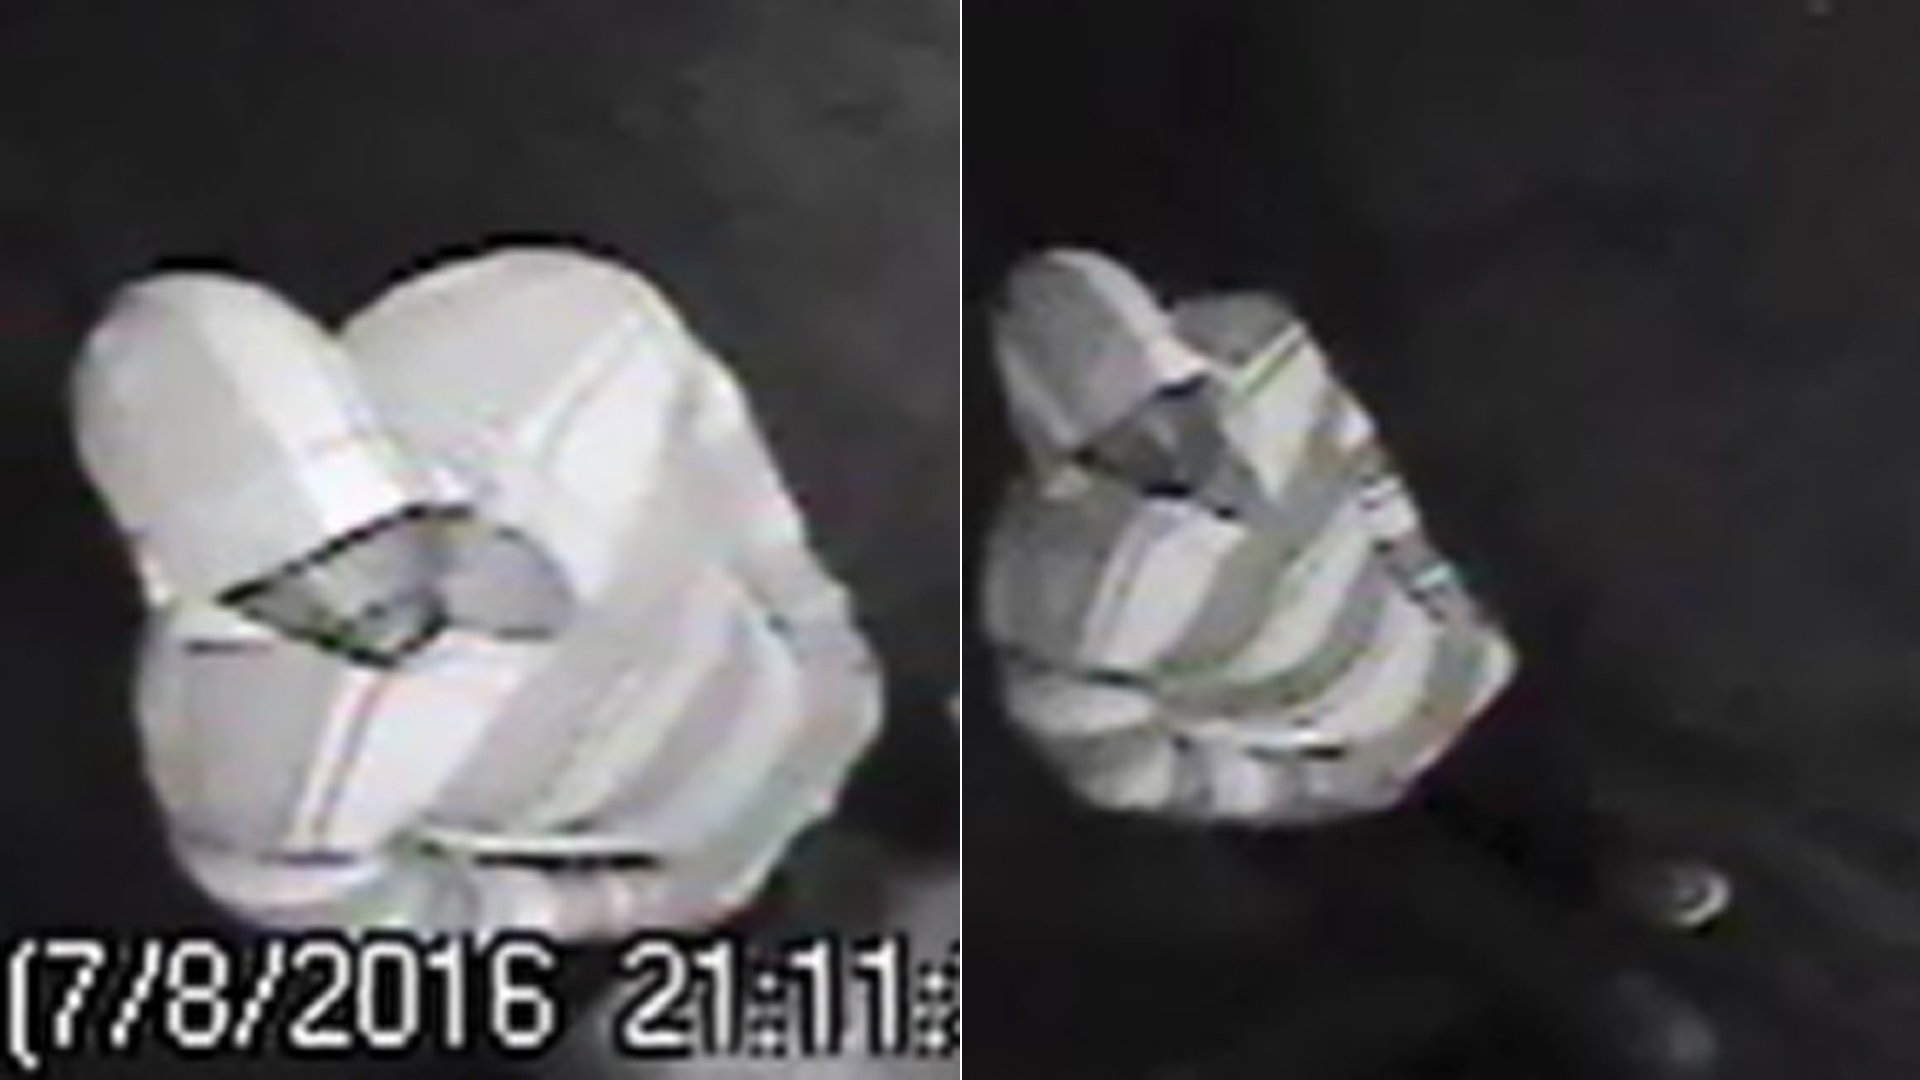 San Bernardino police released these surveillance images of a man suspected in a shooting that left two men and a 9-year-old boy dead on July 8, 2016.